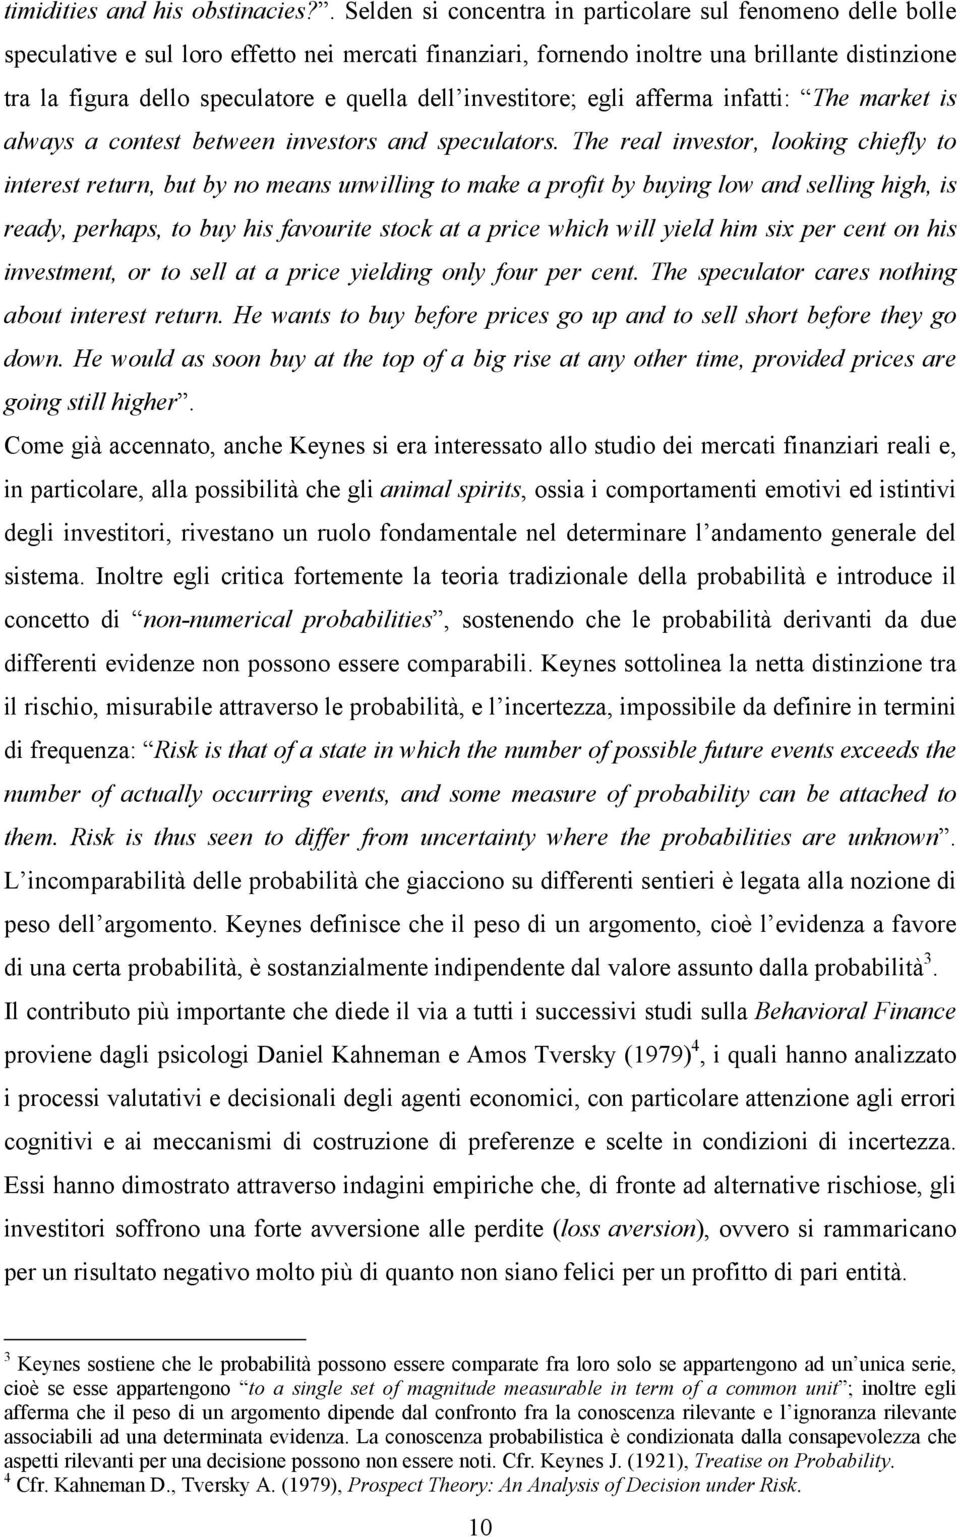 quella dell investitore; egli afferma infatti: The market is always a contest between investors and speculators.